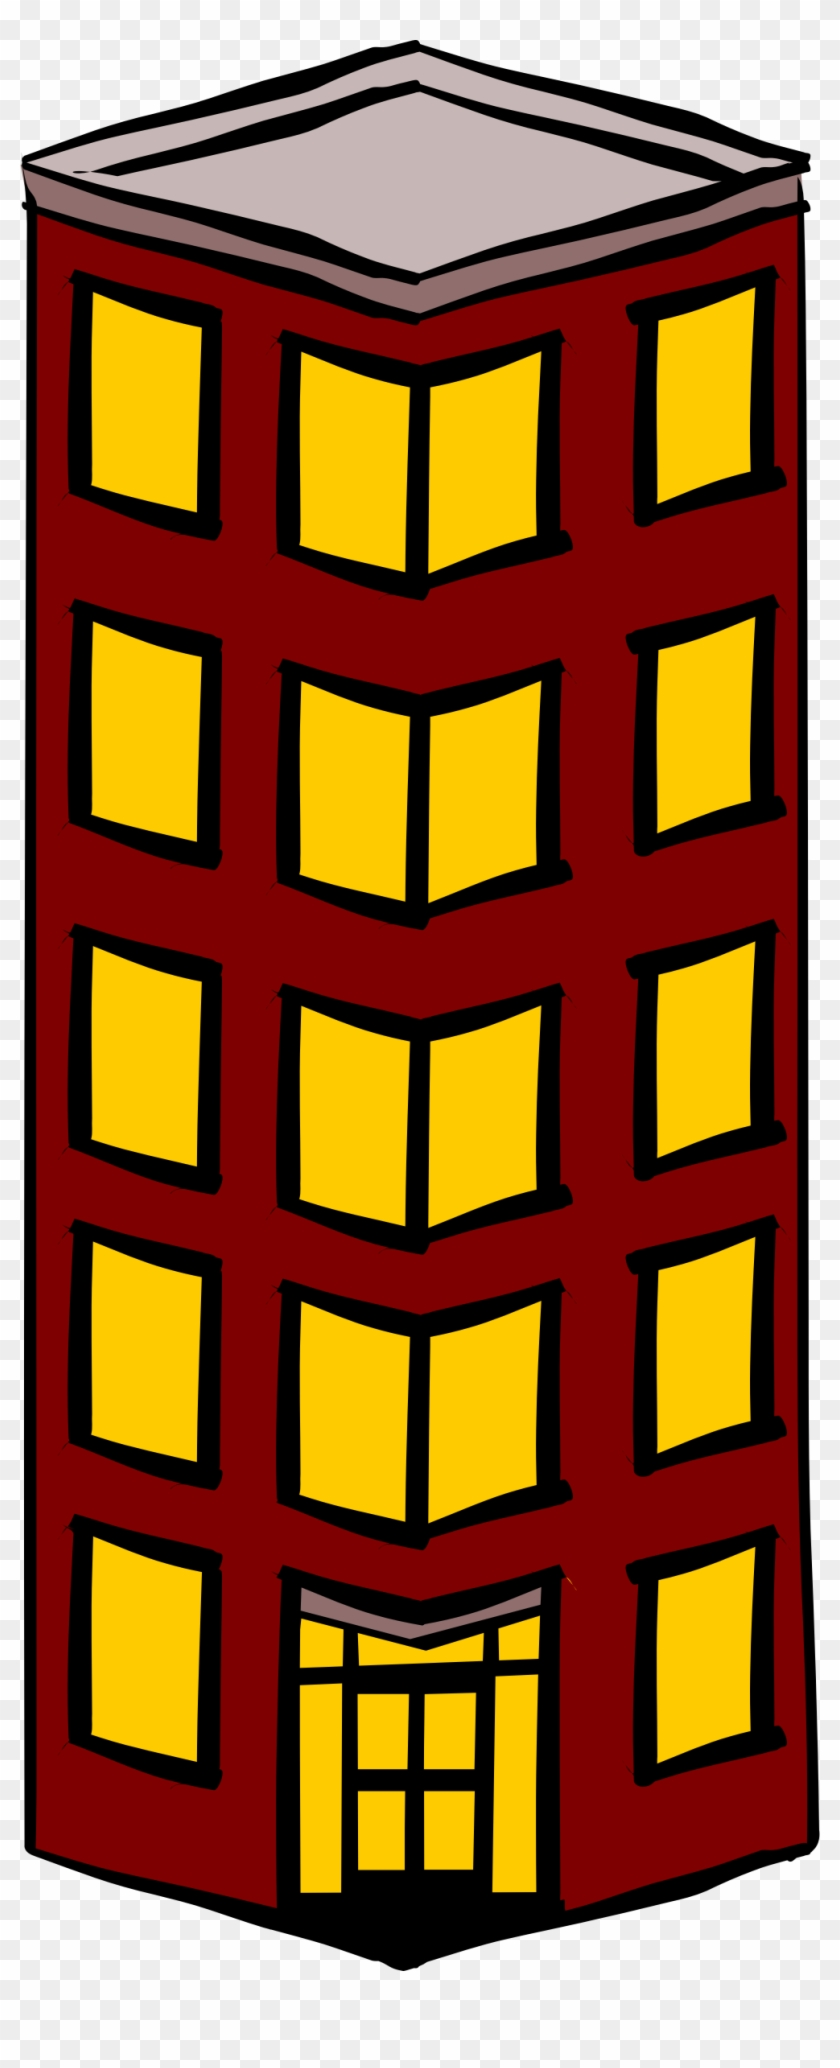 Towers Clipart High Building - Flat Clipart #18802